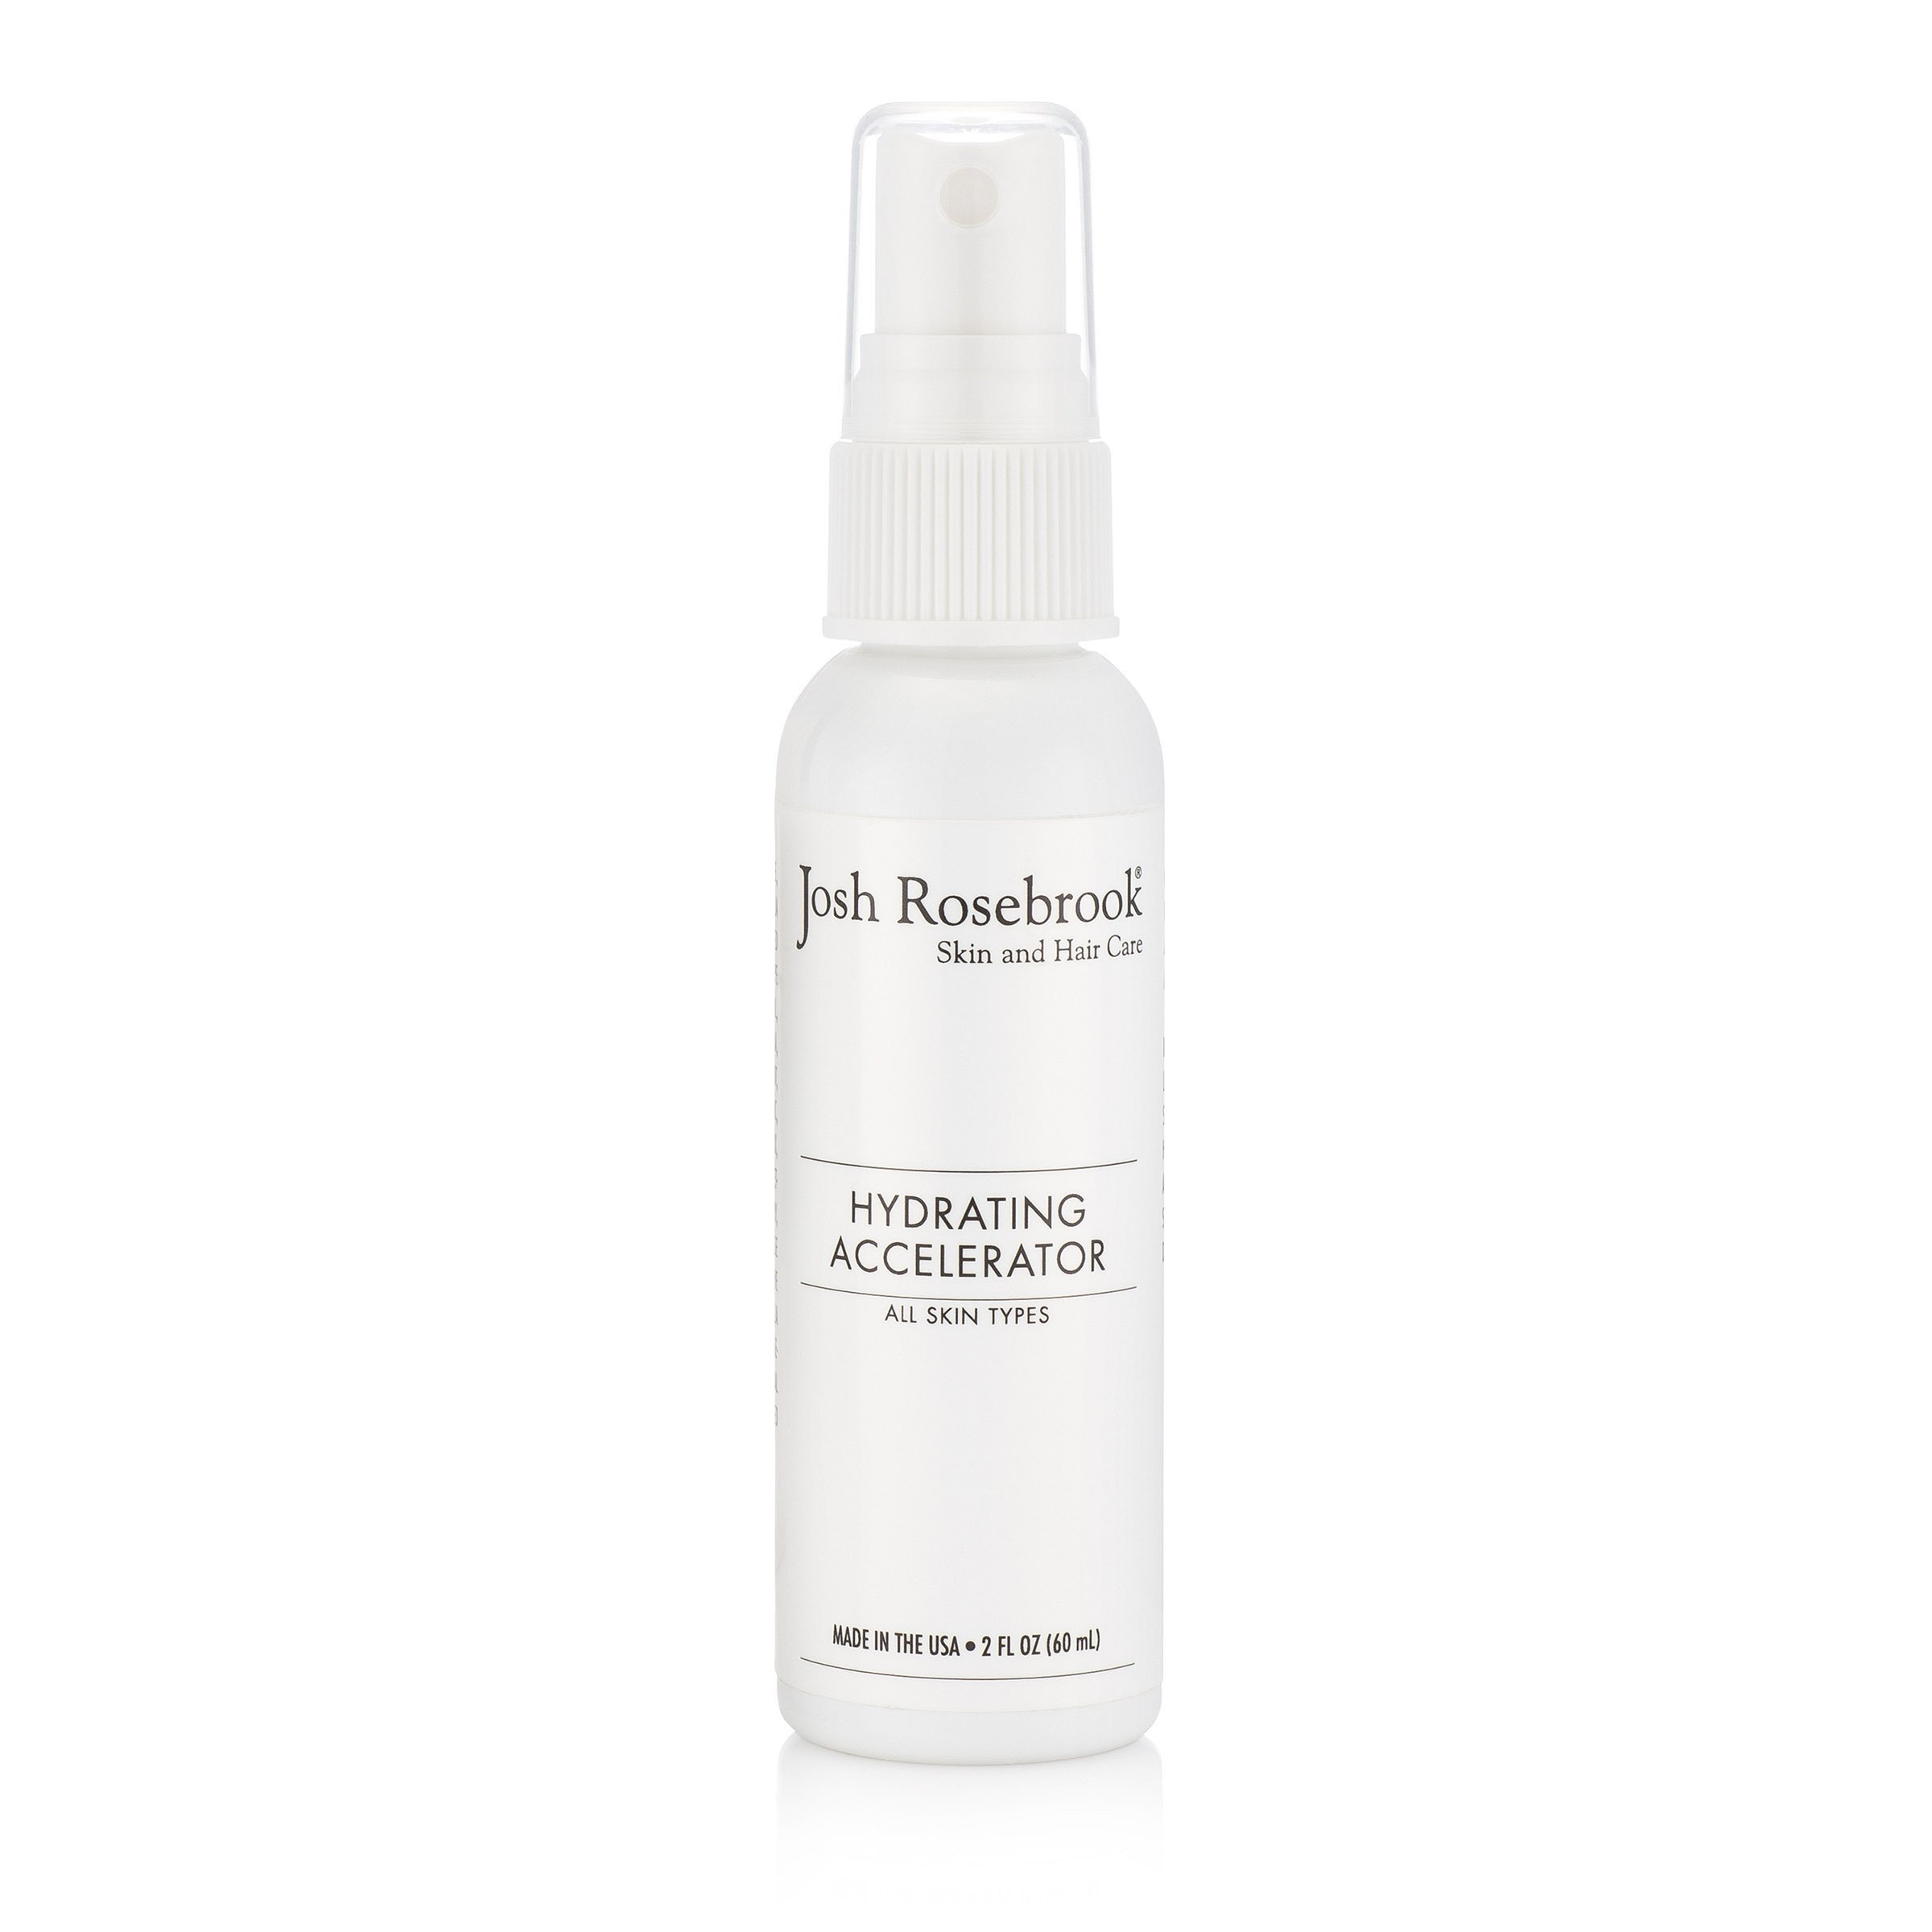 Josh Rosebrook Hydrating Accelerator - I just recently learned about this clean brand, Josh Rosebrook, through watching multiple YouTube videos of my favorite beauty bloggers. This is the product they are all LOVING. It it is supposed to take place of a toner by alleviating the skin's surface tension and allowing it to be open to receive hydration and other benefits from the rest of your skincare products. When my current toner is up I plan to replace it with this and see if it lives up to the hype!